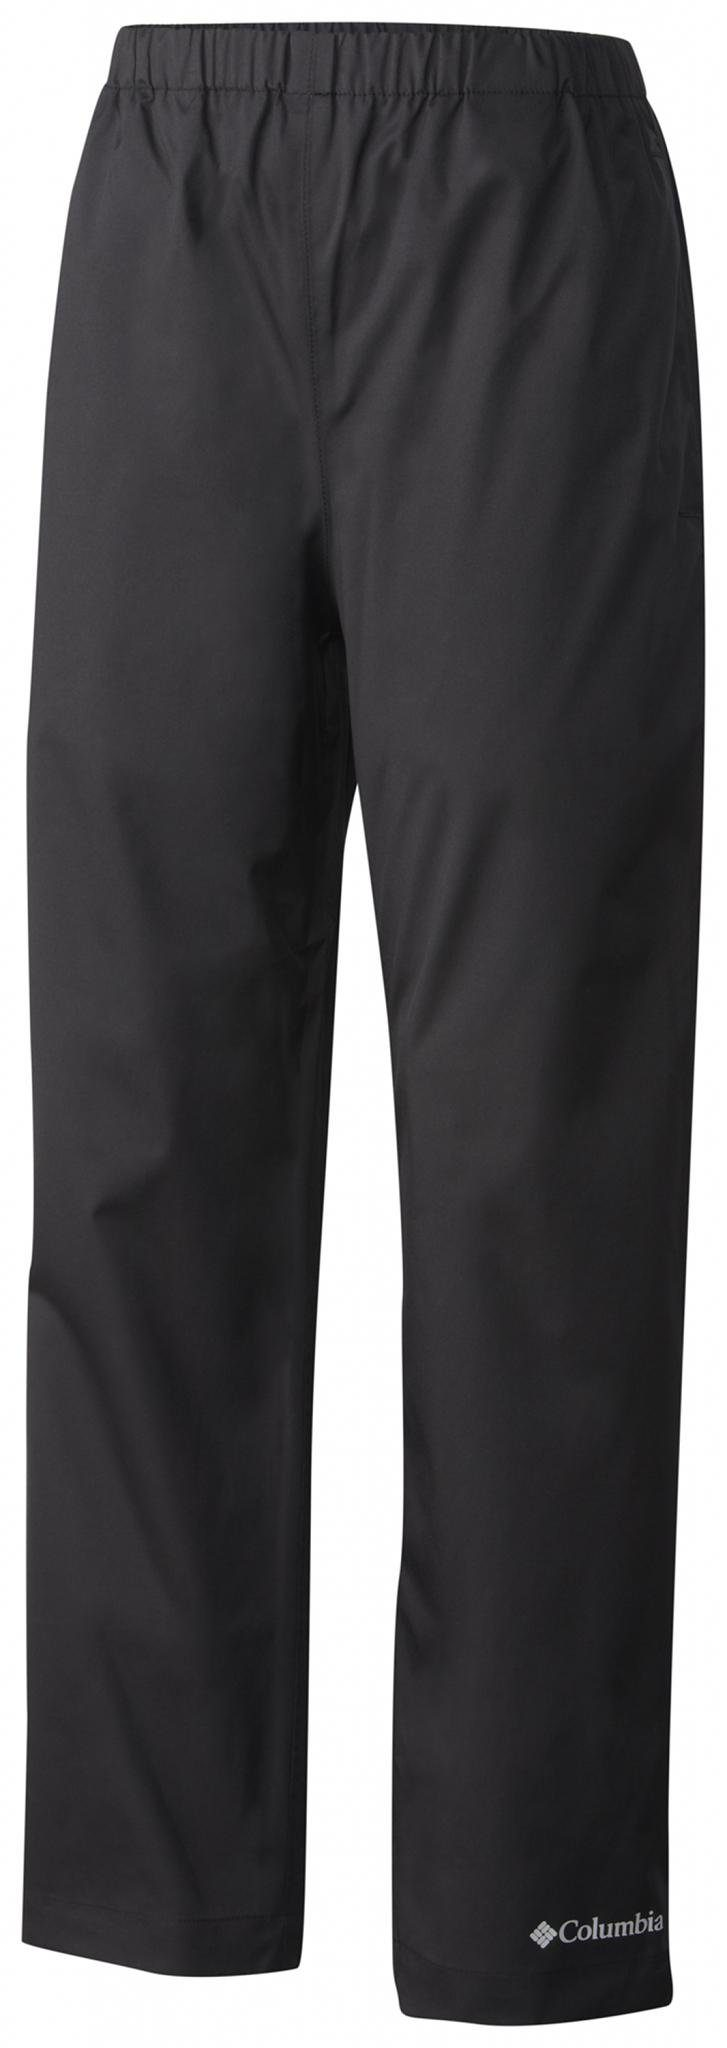 Columbia Hose »Trail Adventure Pant Youth«